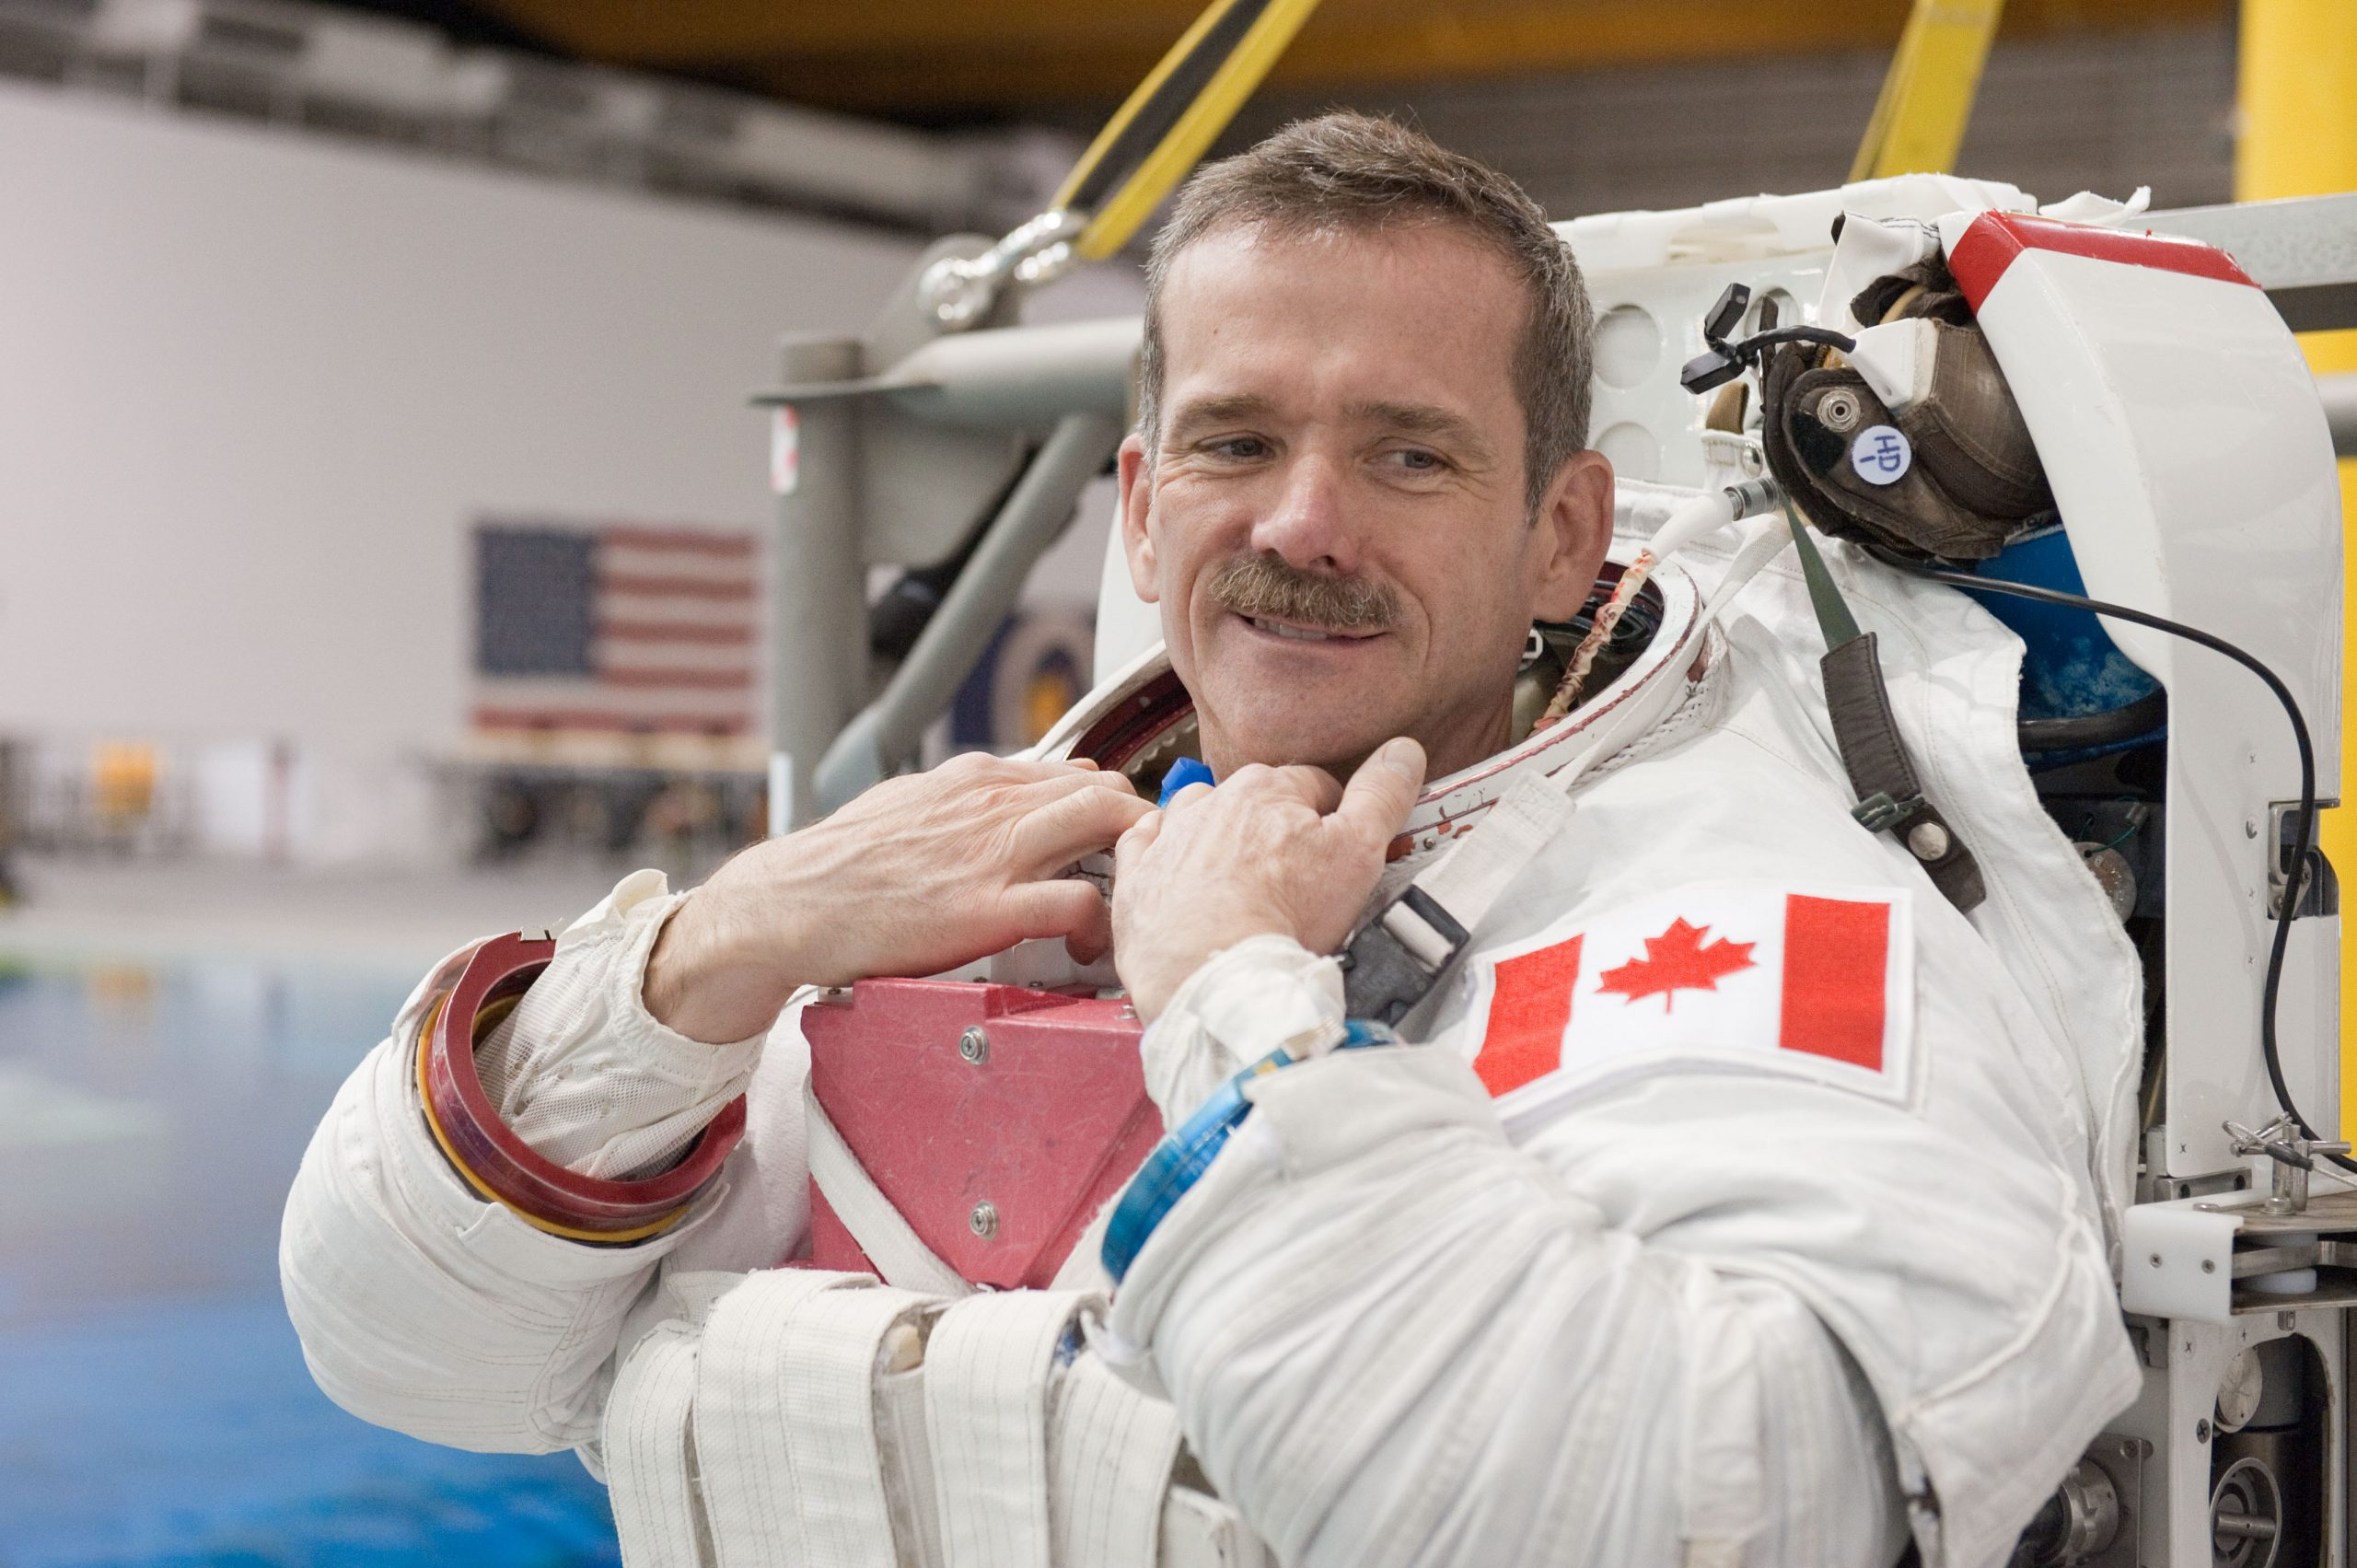 Astronaut Chris Hadfield to speak in Cranbrook, Kimberley